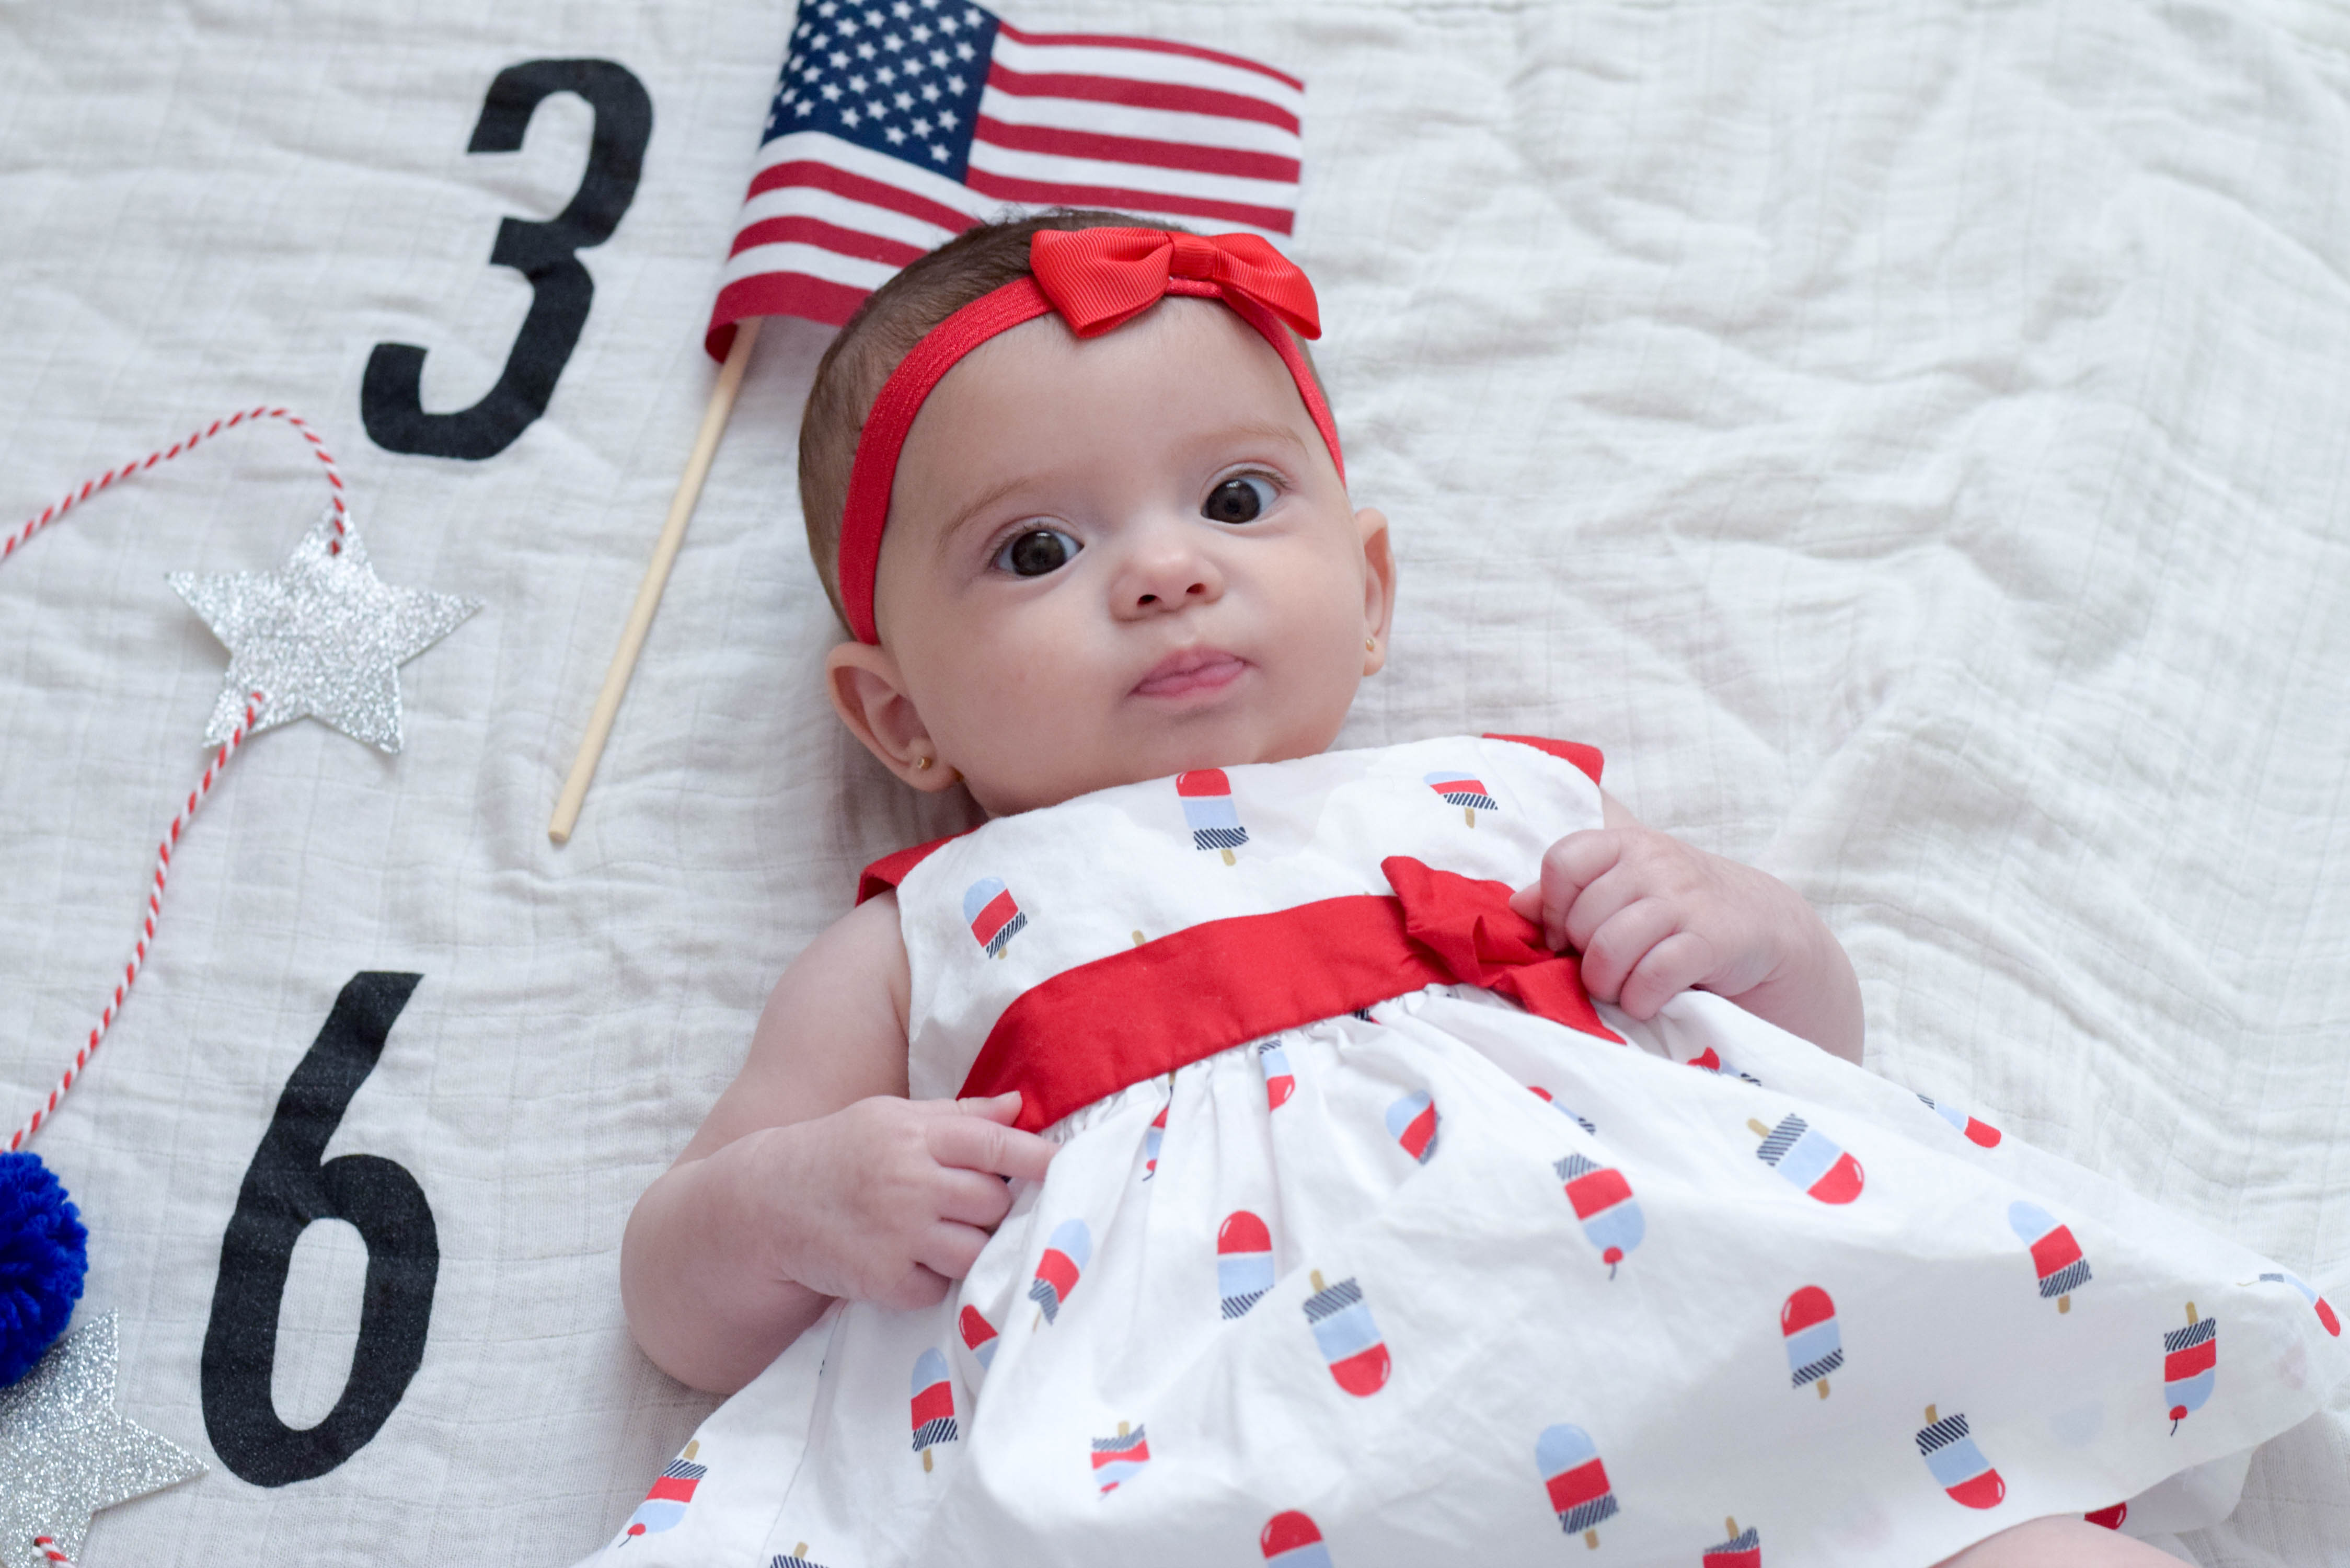 baby Independence Day picture